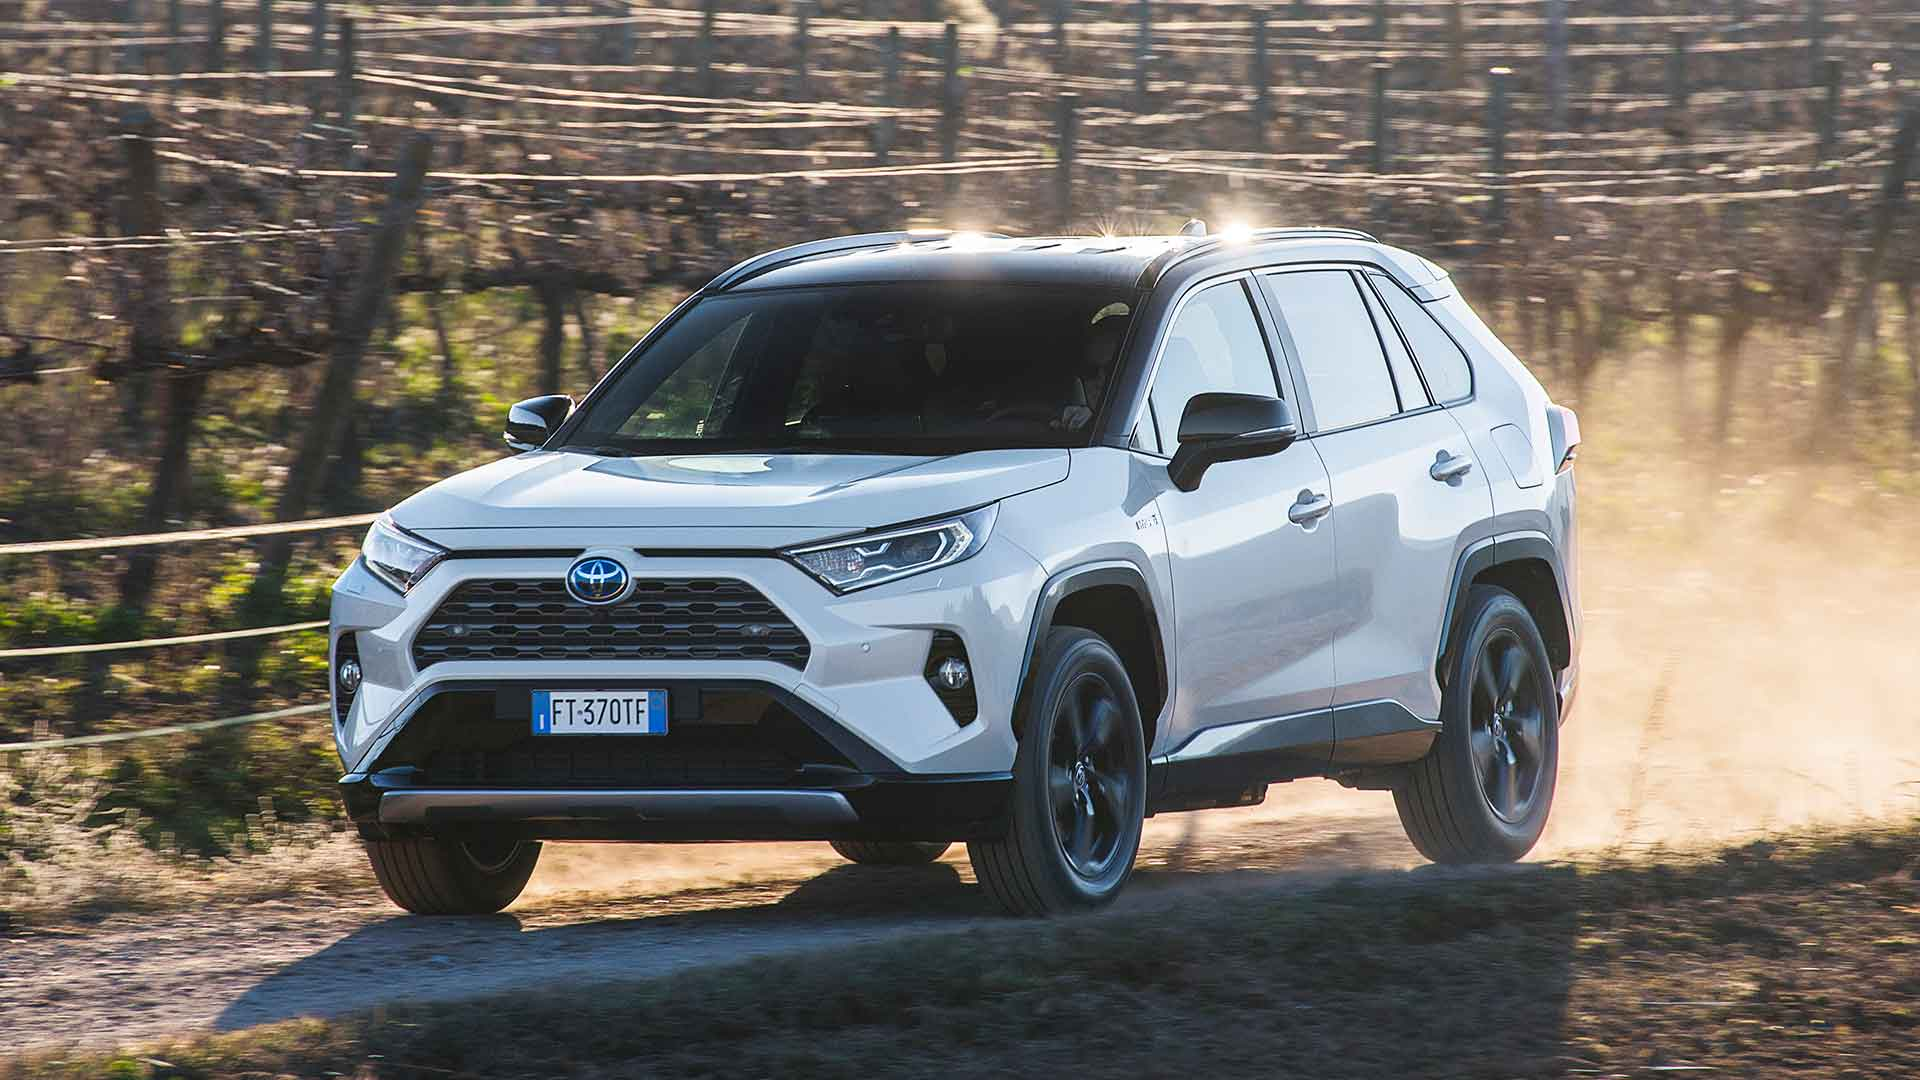 2019 toyota rav4 review a return to its rugged suv roots motoring research. Black Bedroom Furniture Sets. Home Design Ideas